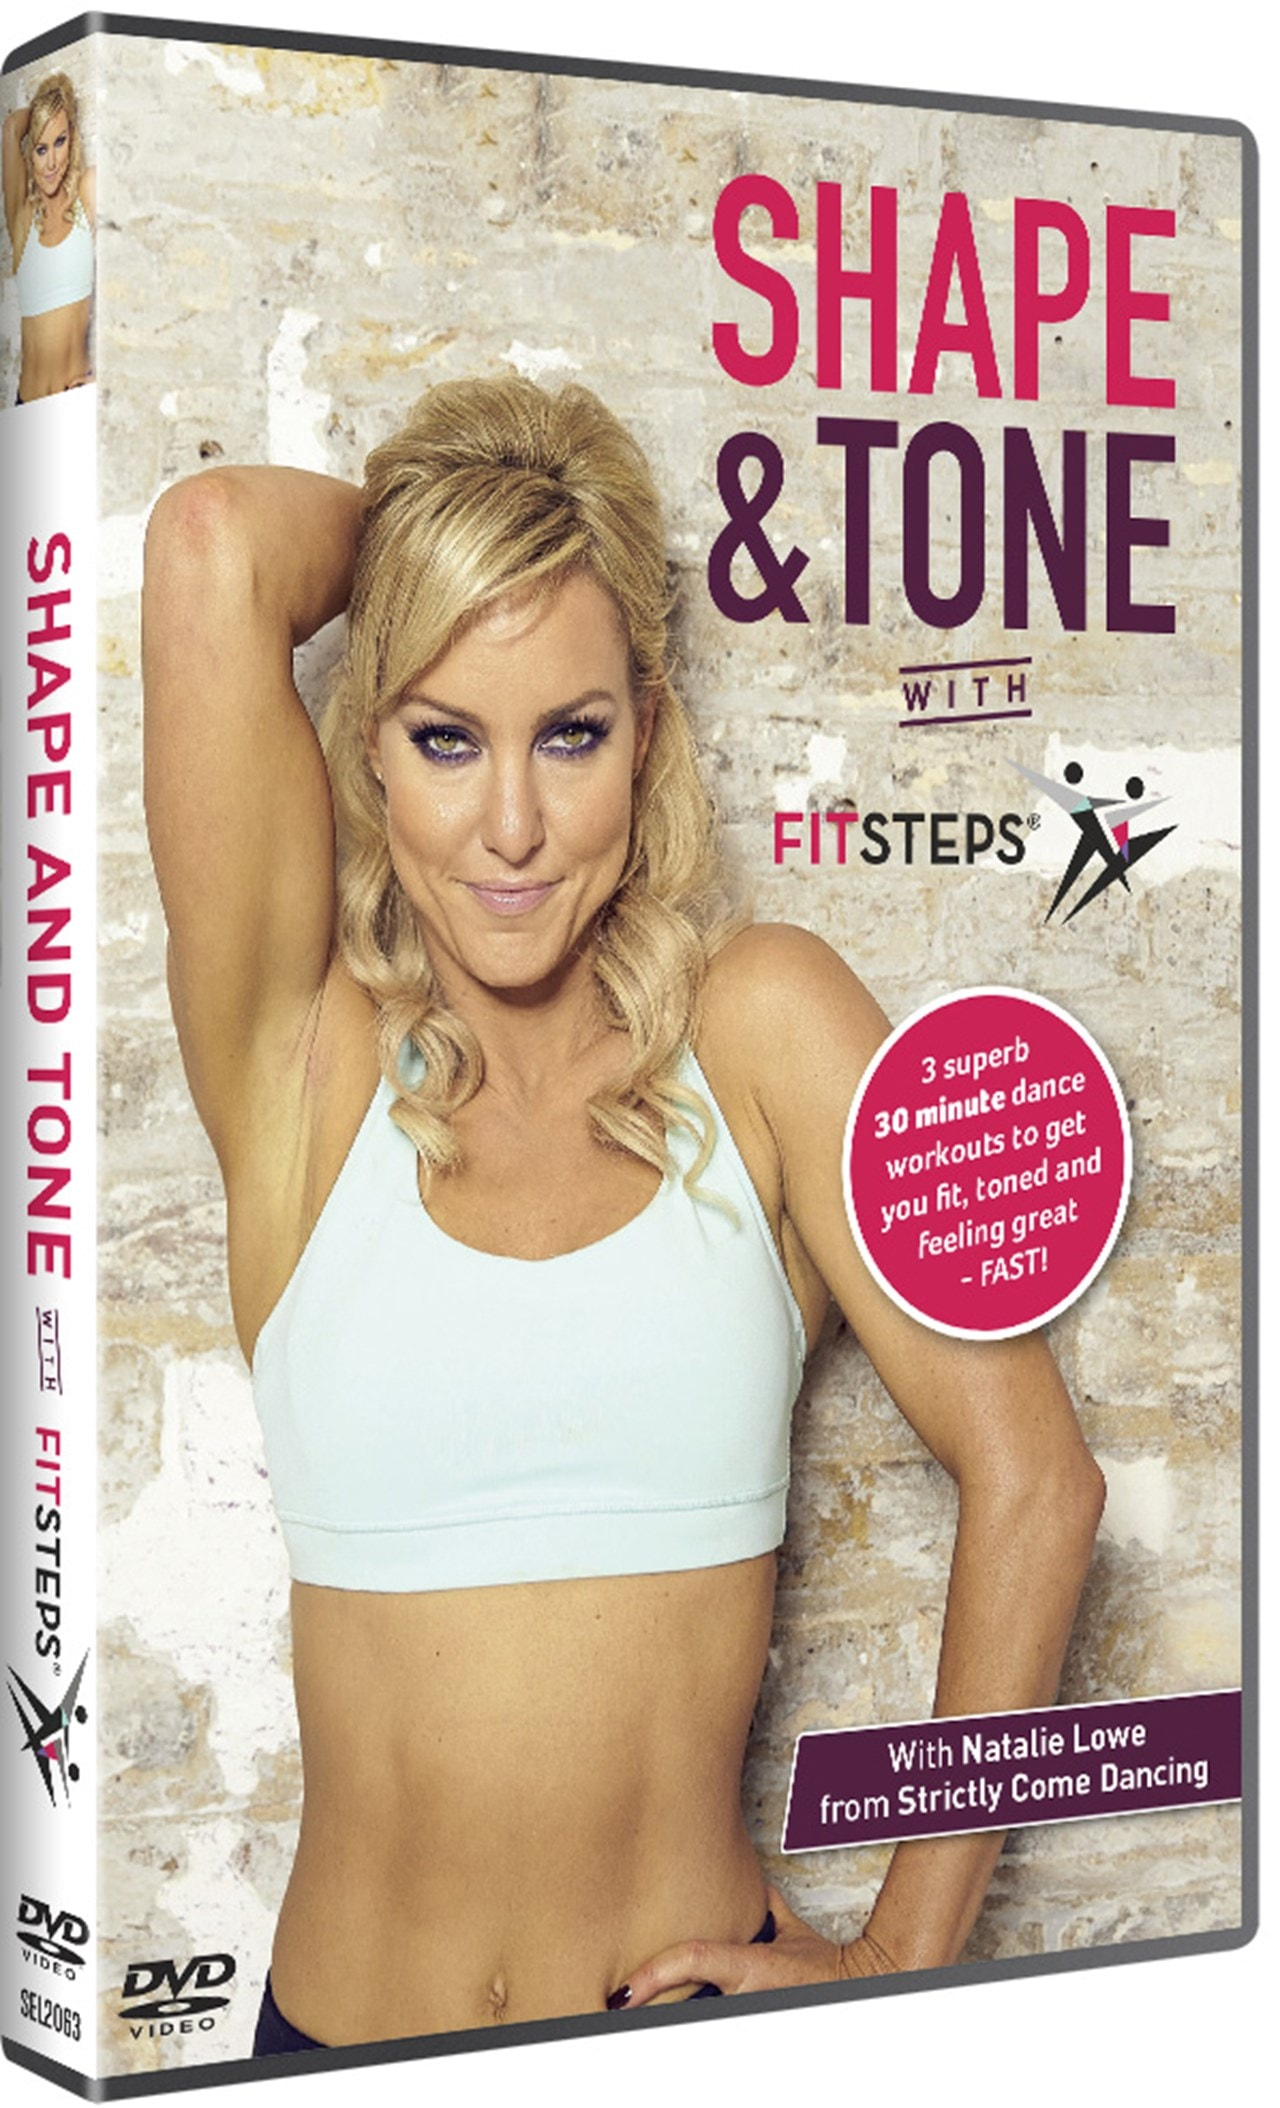 Shape & Tone With FitSteps - 2